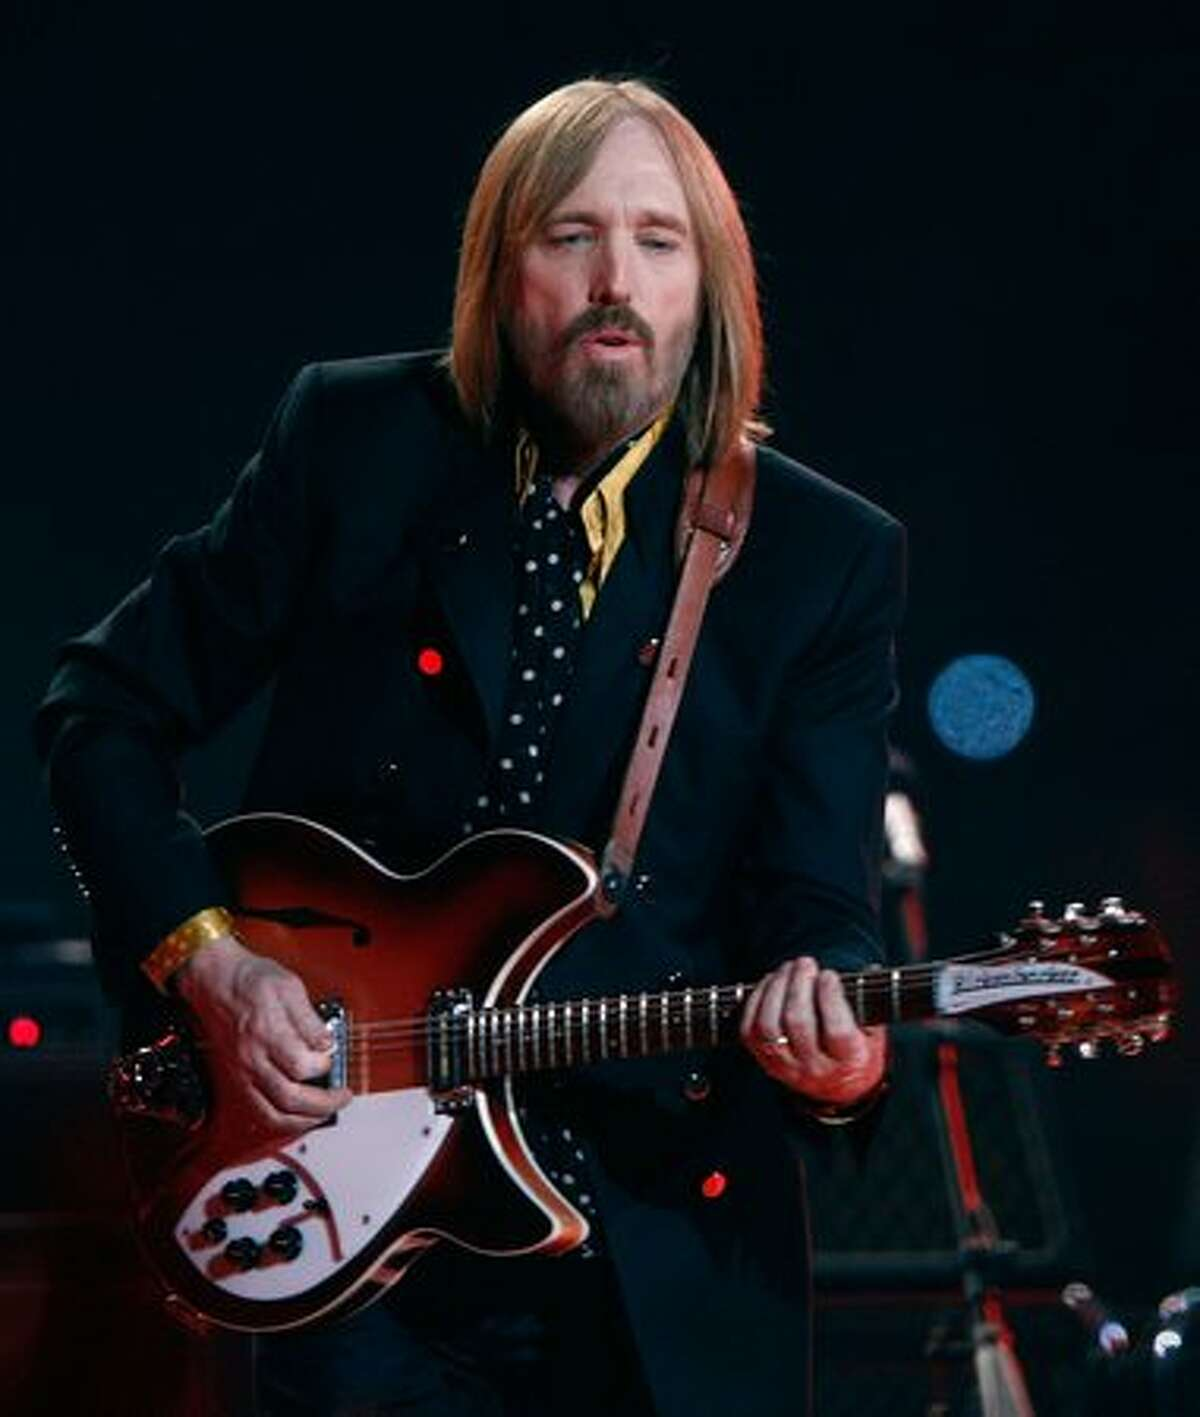 Tom Petty: Hear a sample. (Photo by Michael Buckner/Getty Images)